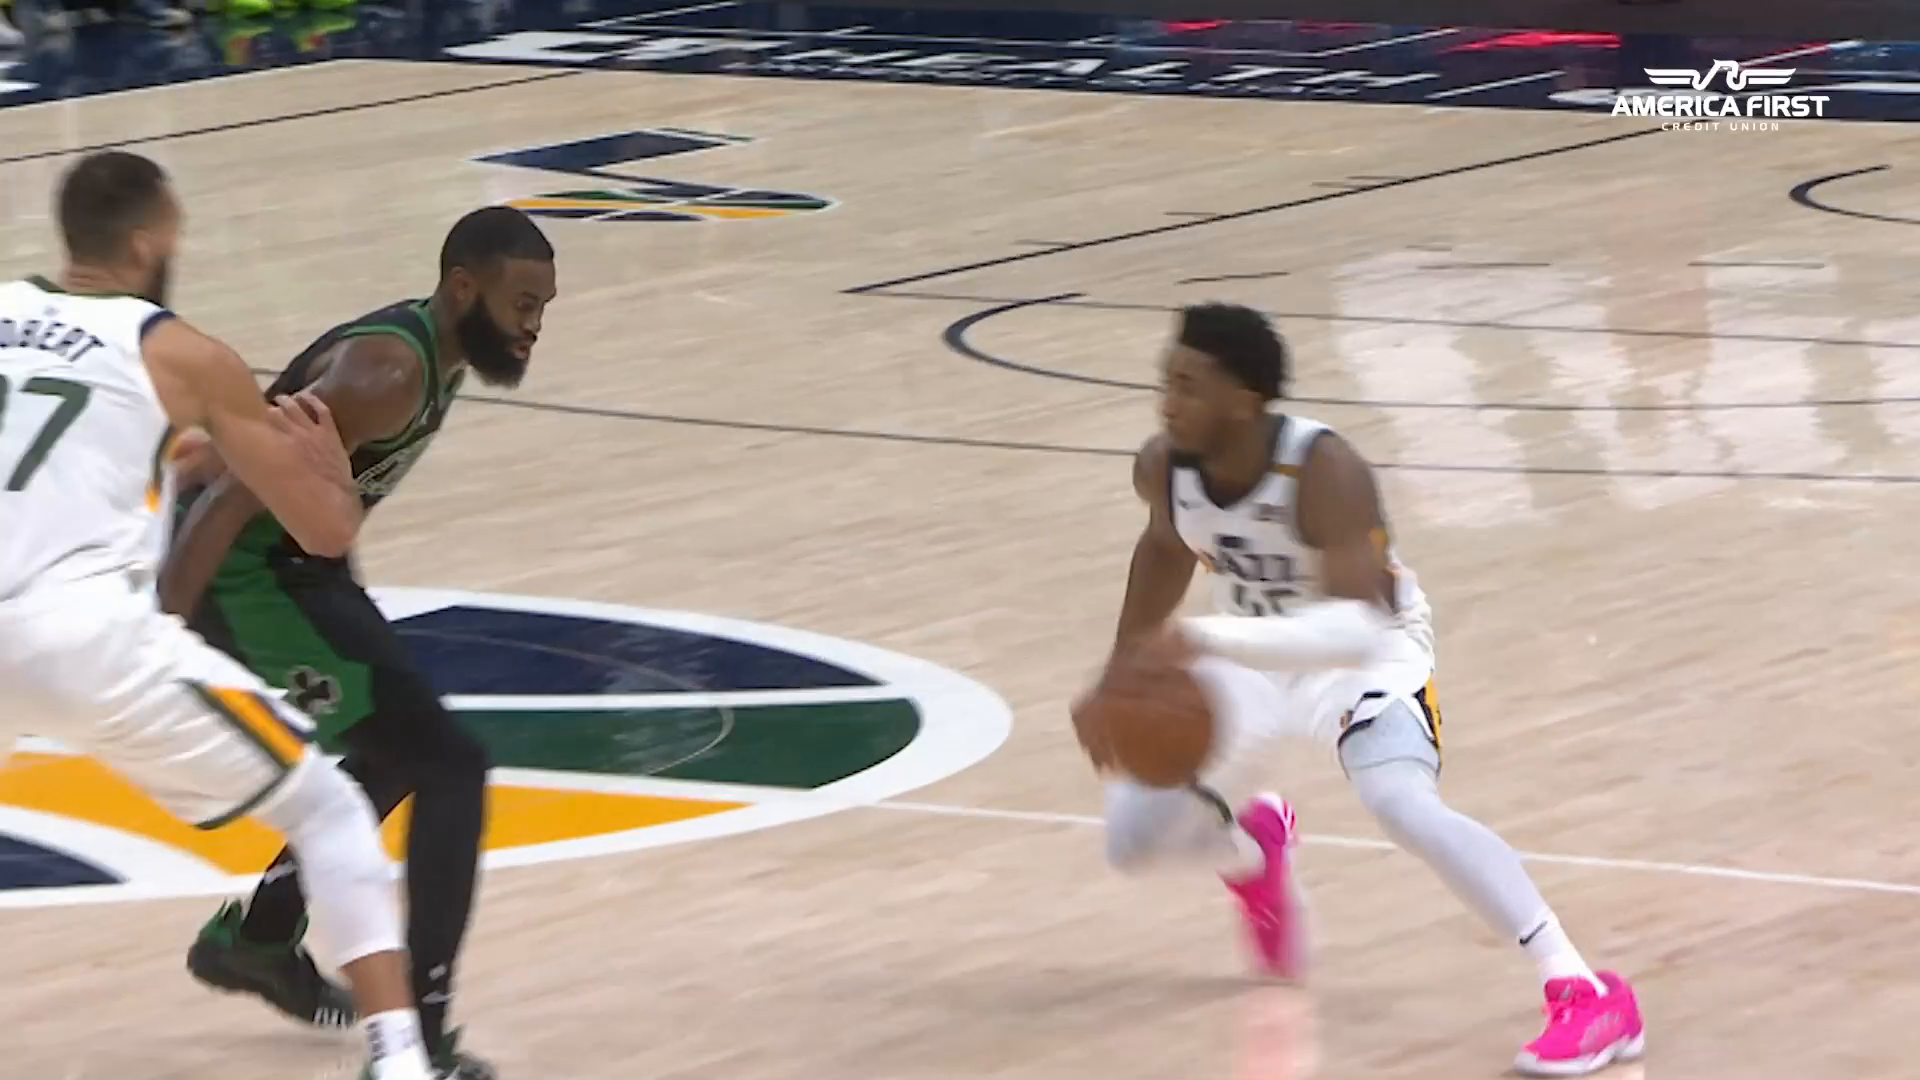 Donovan with the CROSSOVER! | #InstantRewind